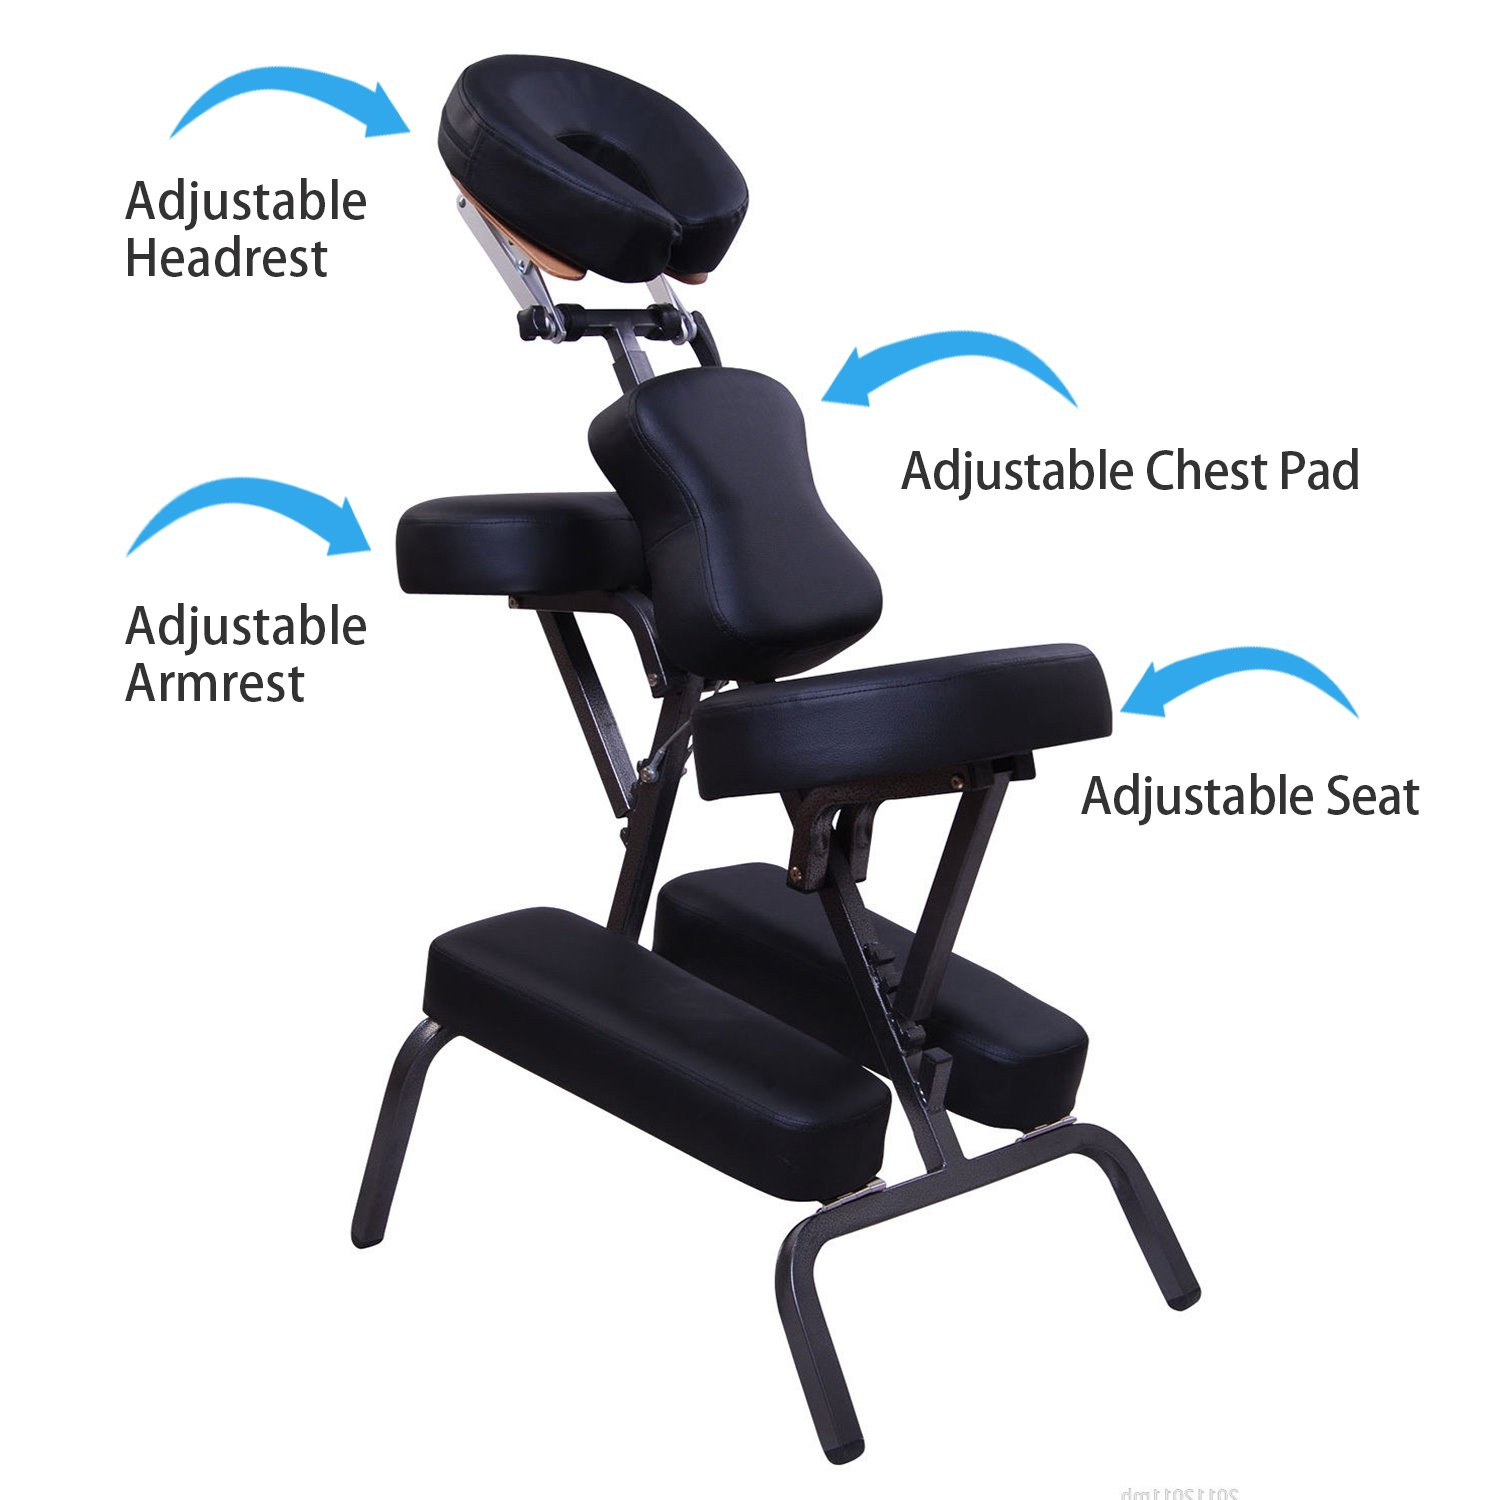 dual elite chair heat quad massage shiatsu cushion with homedics reviews walmart amazon